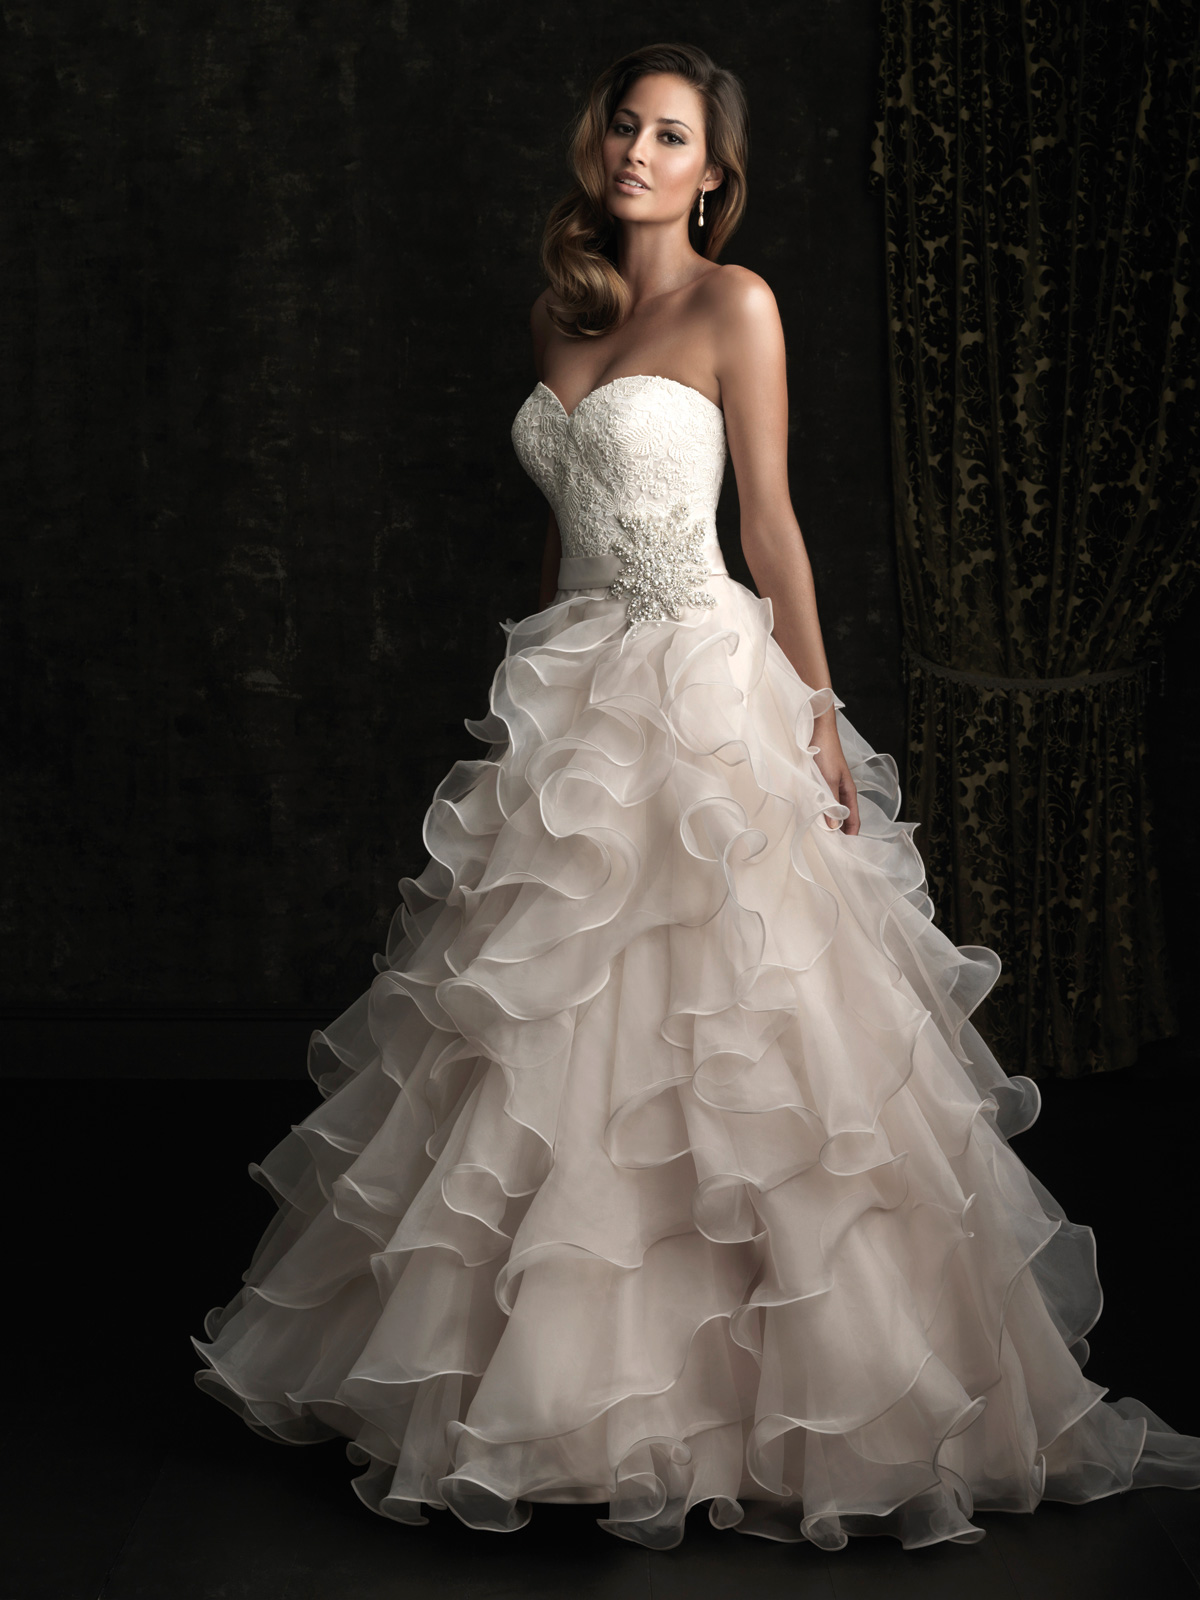 Cinderella Wedding Dress Allure 8955 Dimitradesigns Com